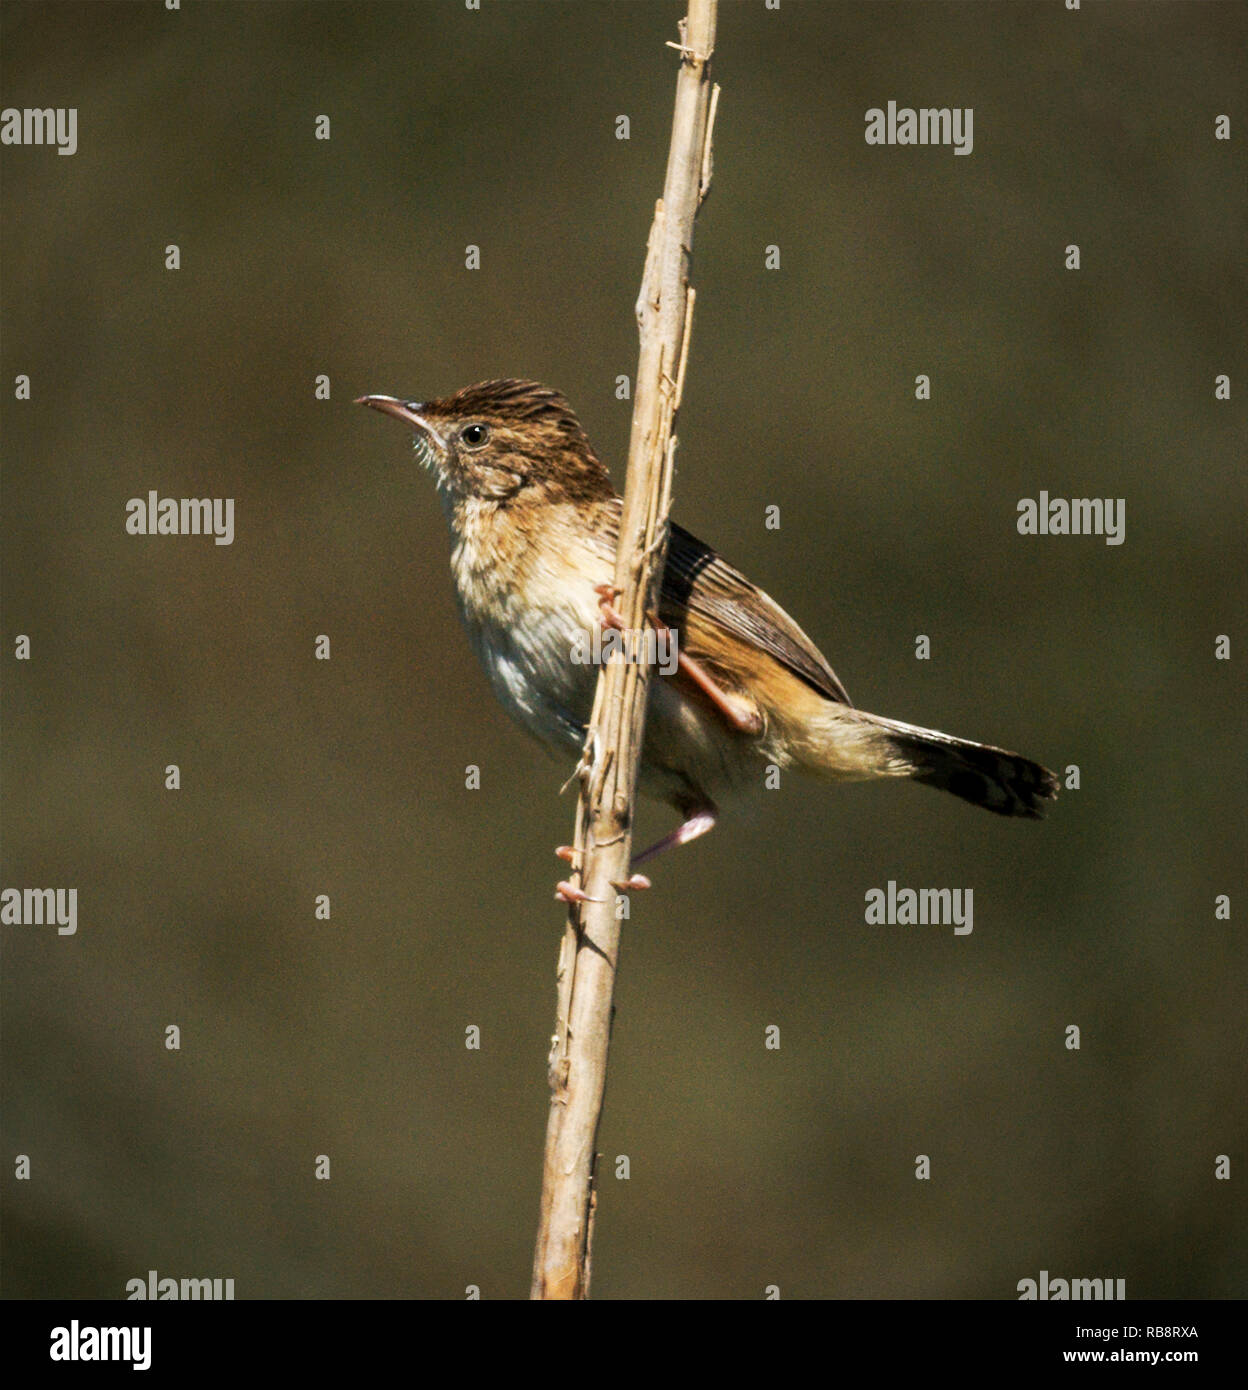 A Fan-tailed Warbler (Cisticola juncidis) singing from an exposed perch on the edge of a Spanish wetland. - Stock Image